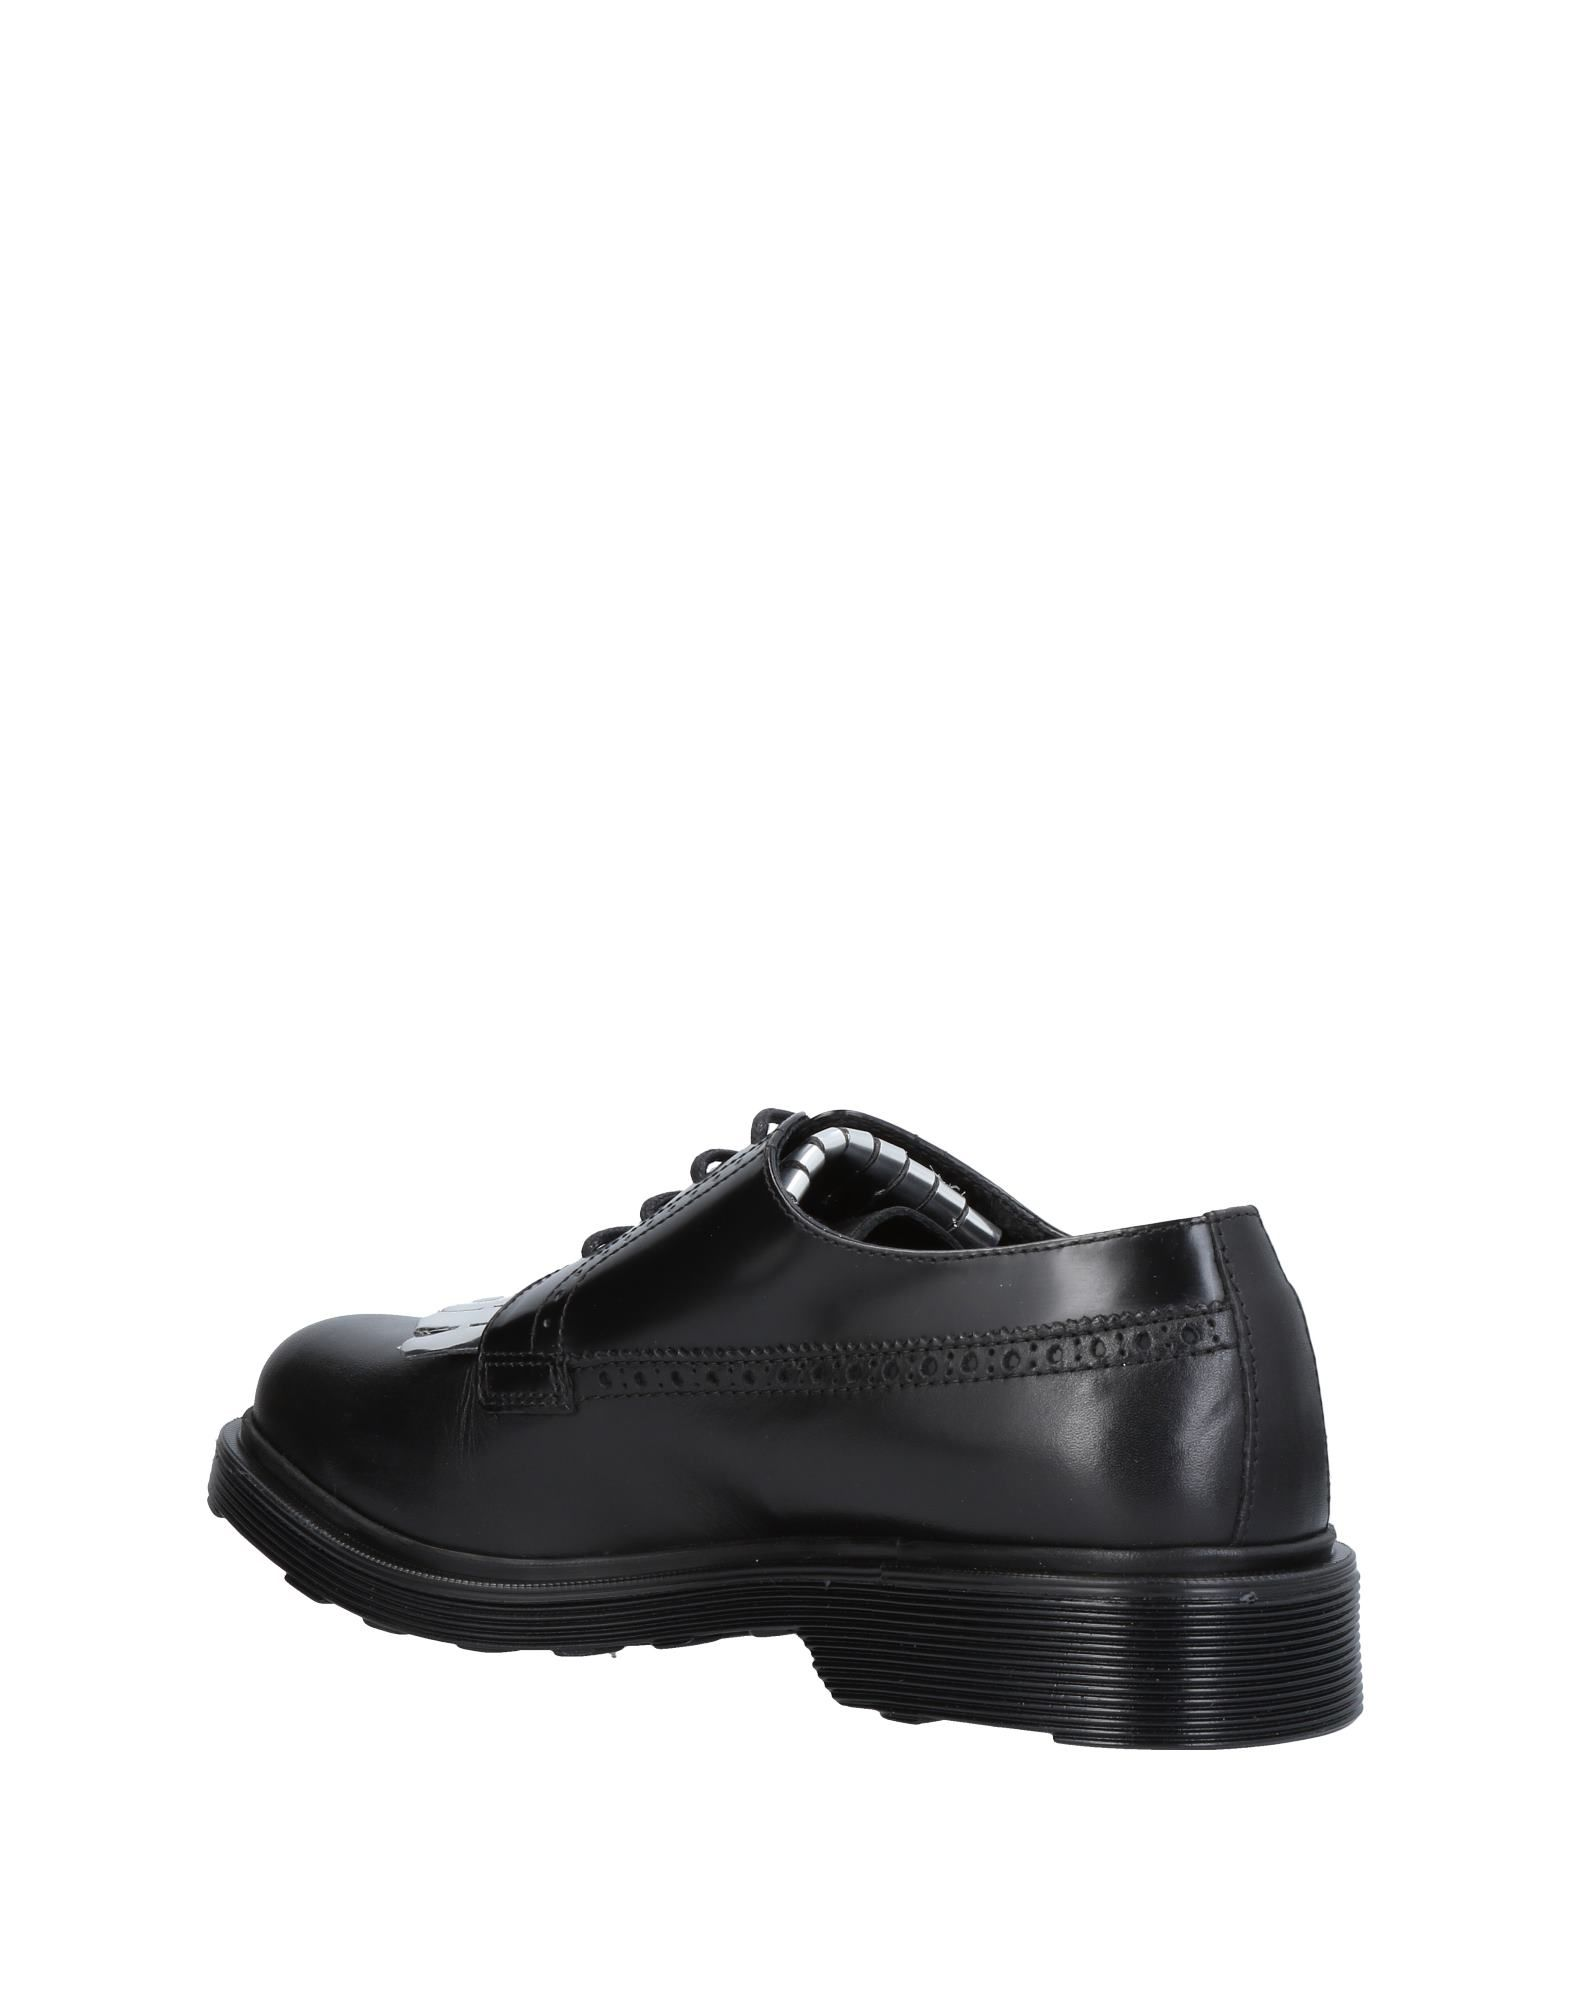 CHAUSSURES - BottinesTamara Mellon L1PlZ